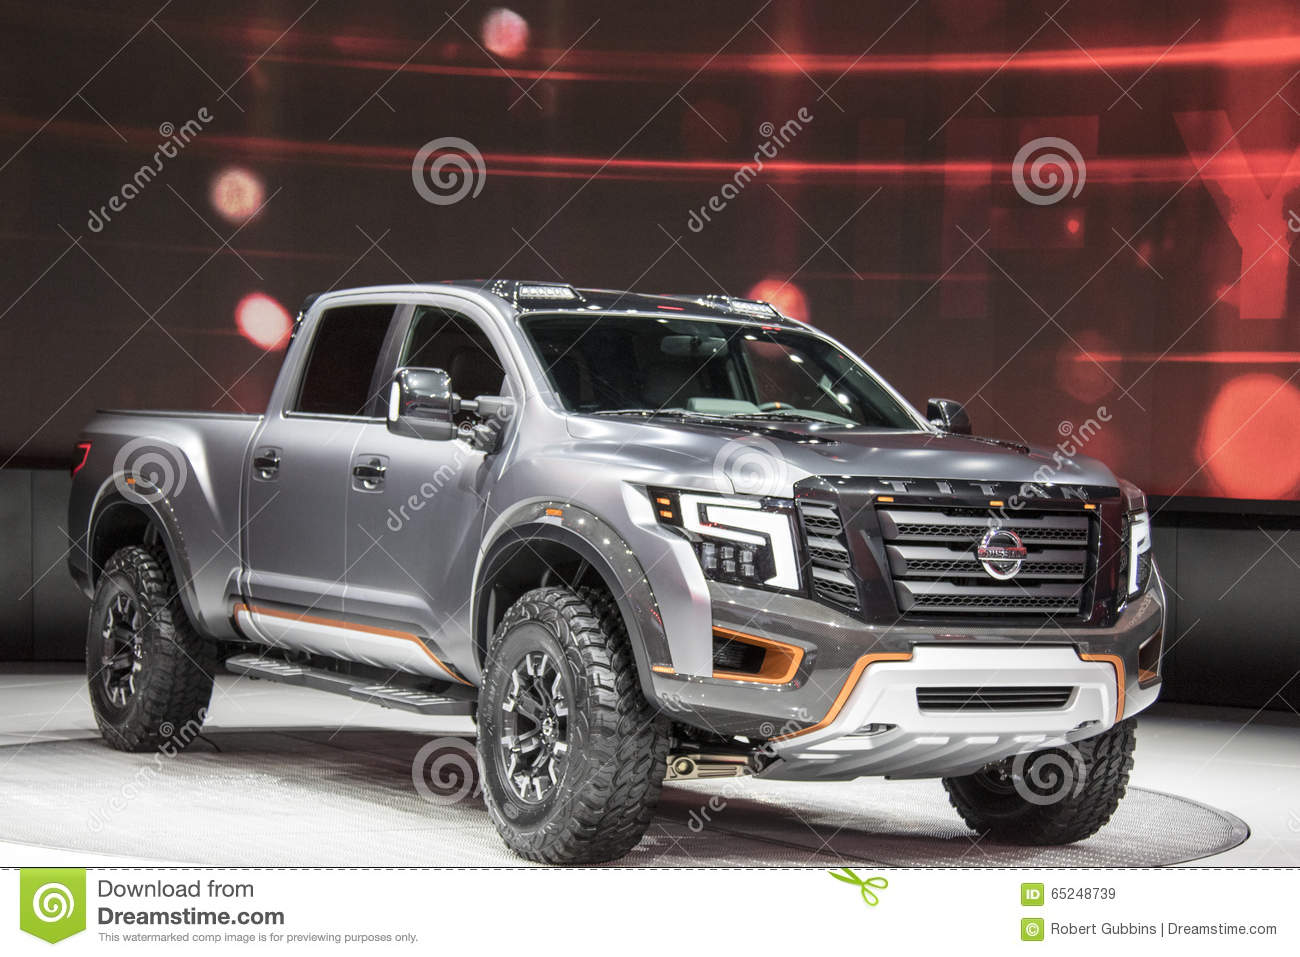 detroit january 17 the 2017 nissan titan pickup truck. Black Bedroom Furniture Sets. Home Design Ideas